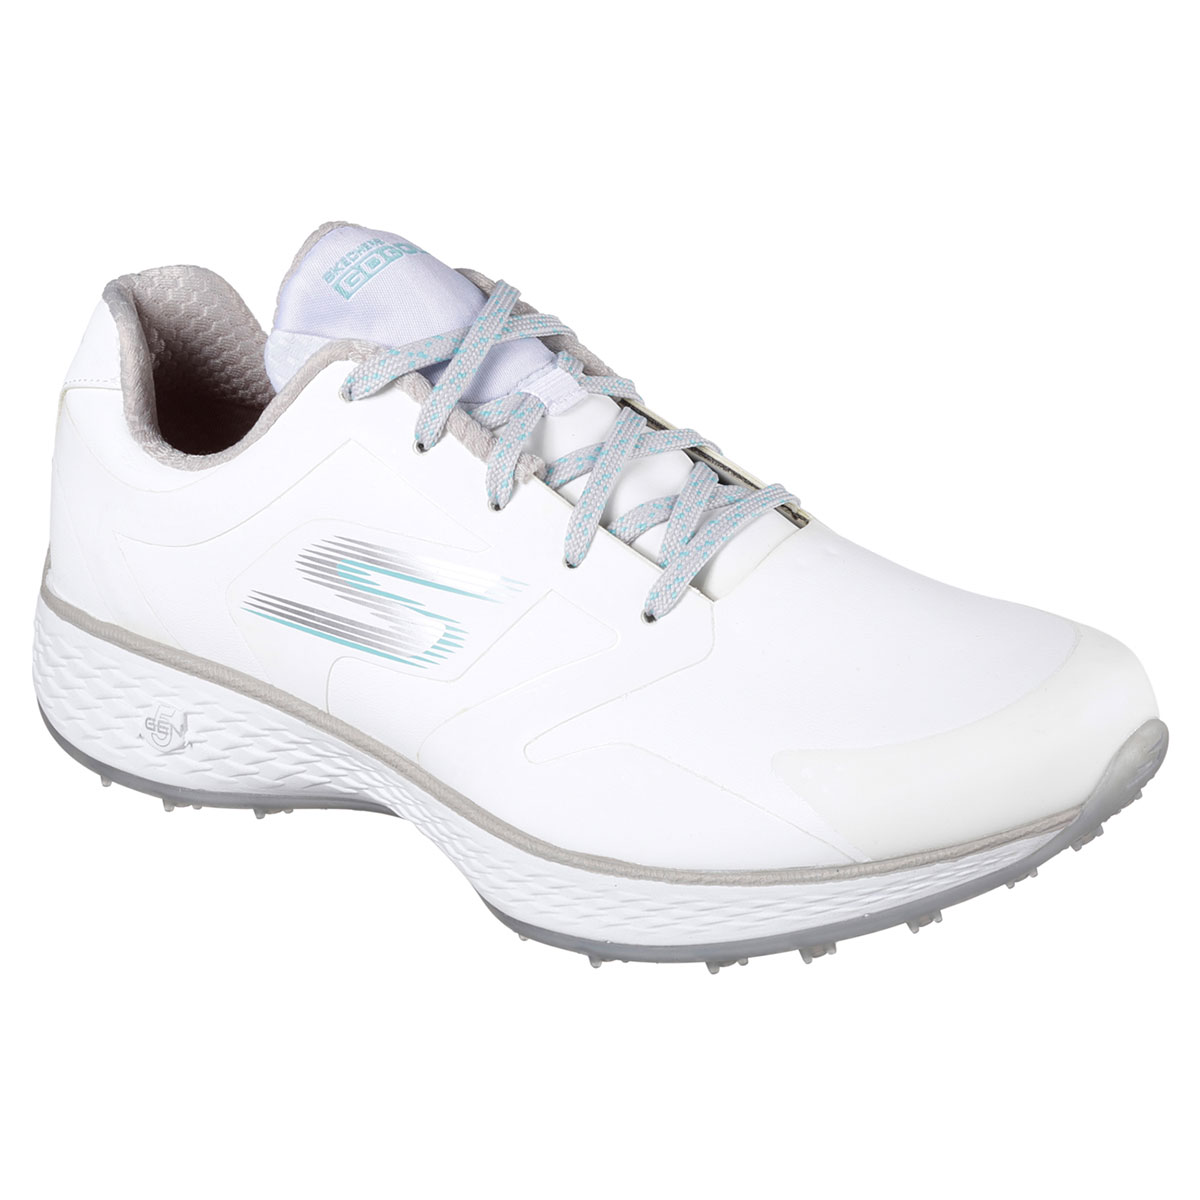 2017 Skechers Go Golf Birdie Tour Ladies Golf Shoes Odwyers Golf